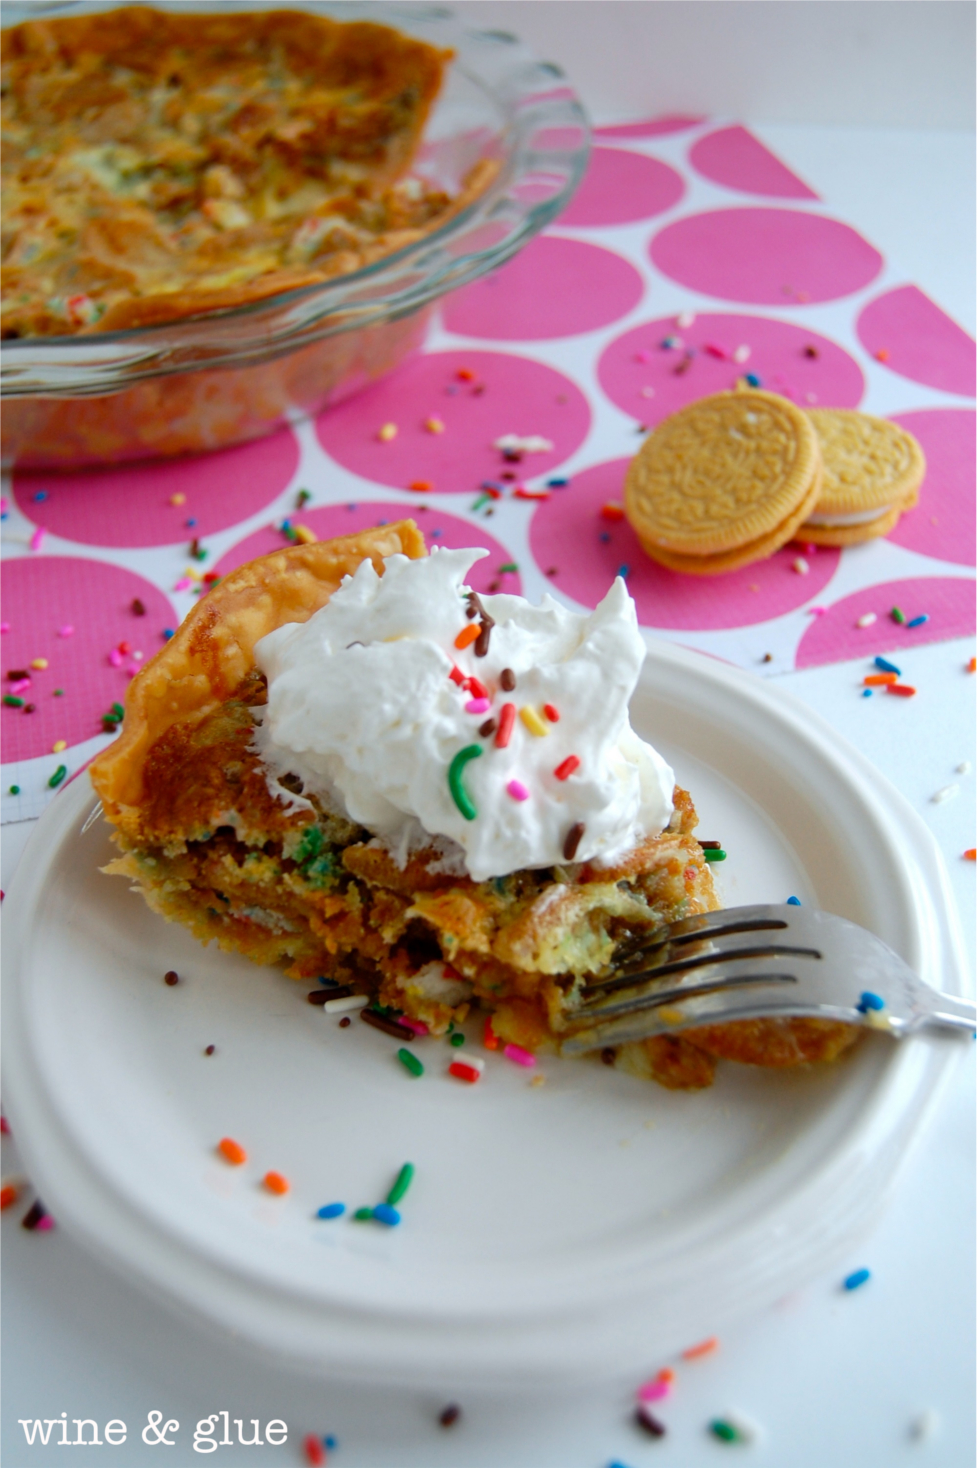 A slice of Oreo Cookie Birthday Cake Pie that is topped with a dollop of whip cream and rainbow sprinkles